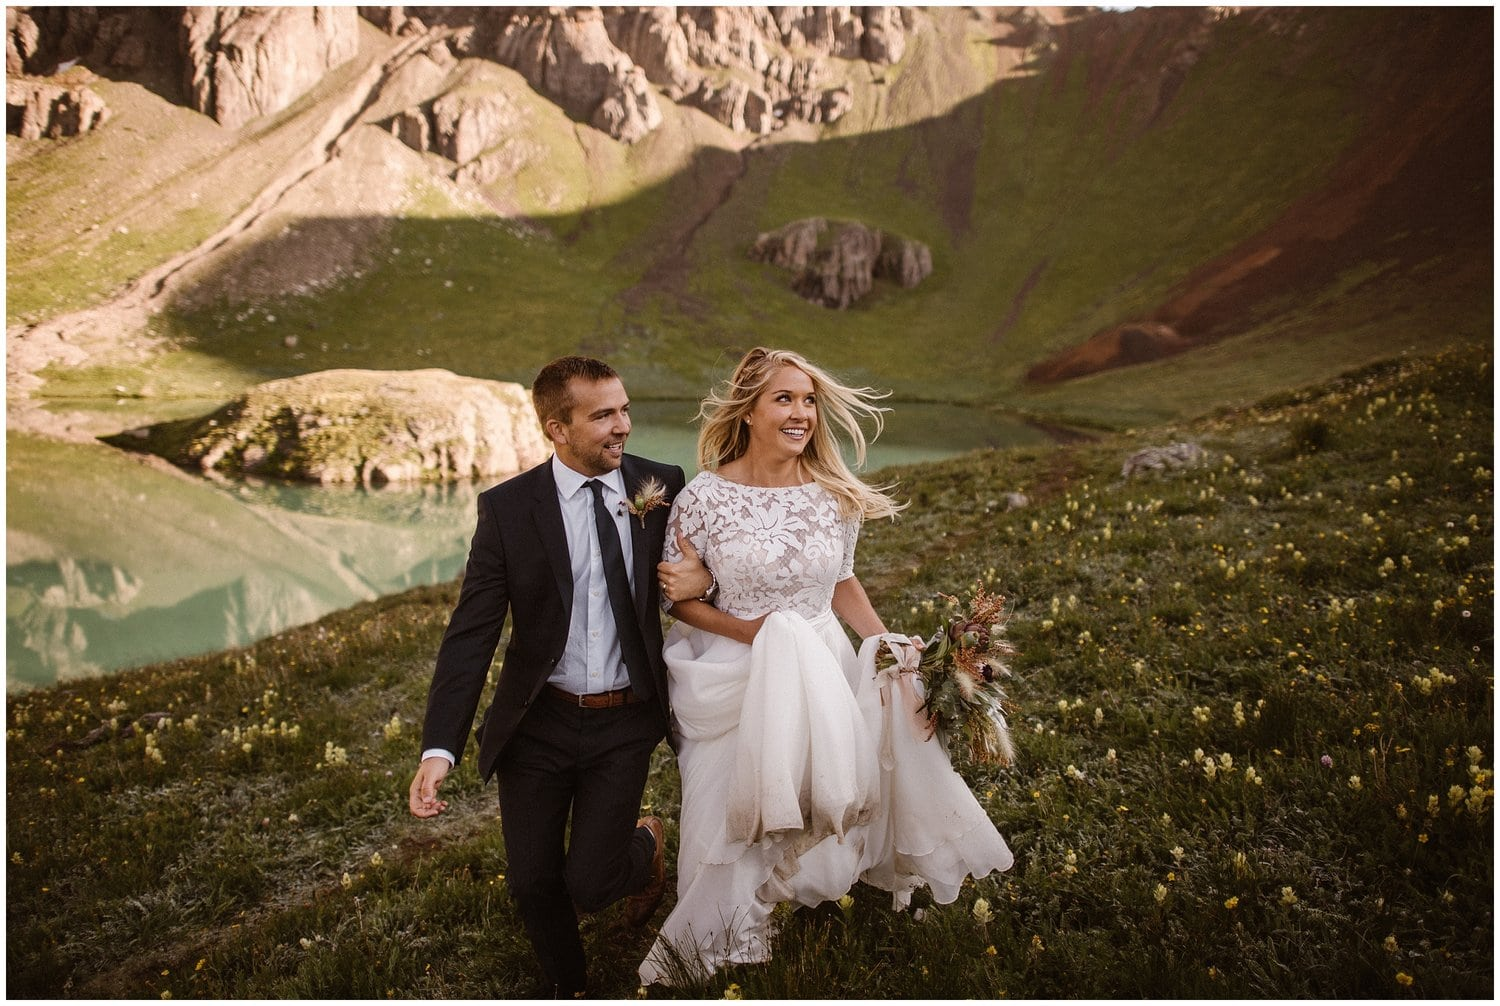 Bride and groom walk hand in hand in the San Juan Mountains on their wedding day.